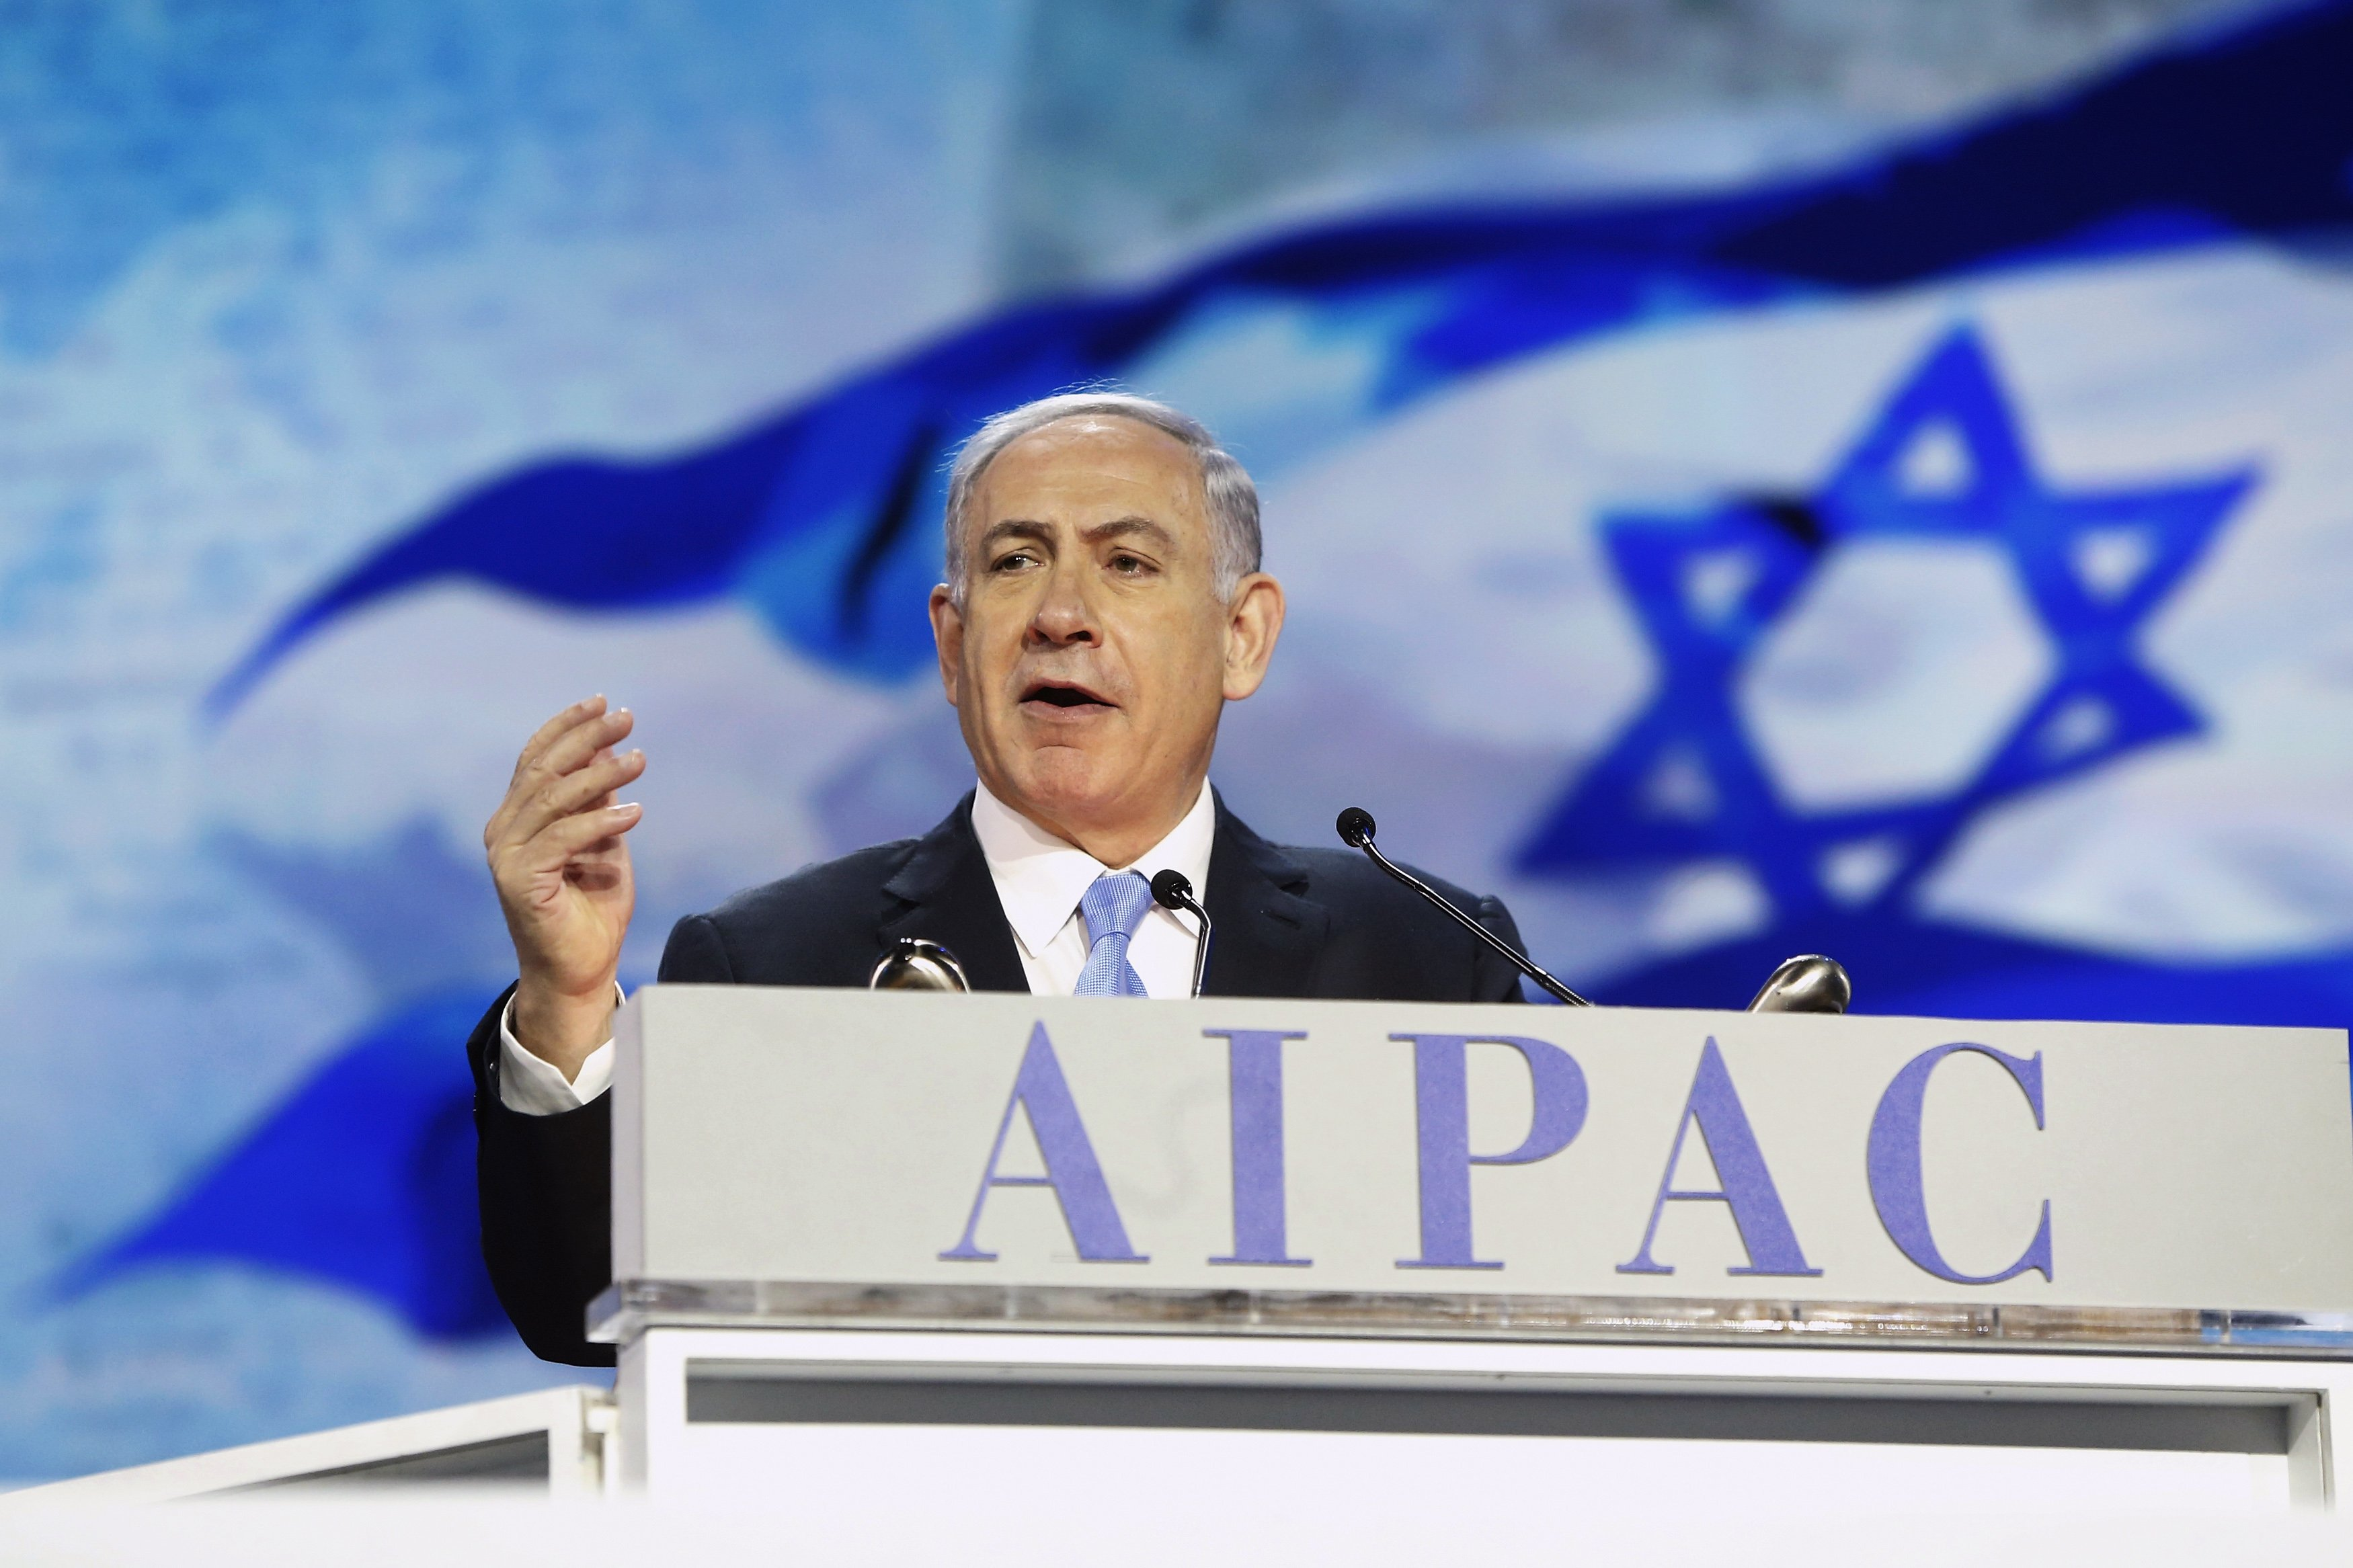 """Israel's Prime Minister Benjamin Netanyahu addresses the American Israel Public Affairs Committee (AIPAC) policy conference in Washington, March 2, 2015. Netanyahu said on Monday that the alliance between his country and the United States is """"stronger than ever"""" and will continue to improve. REUTERS/Jonathan Ernst (UNITED STATES - Tags: POLITICS TPX IMAGES OF THE DAY)"""